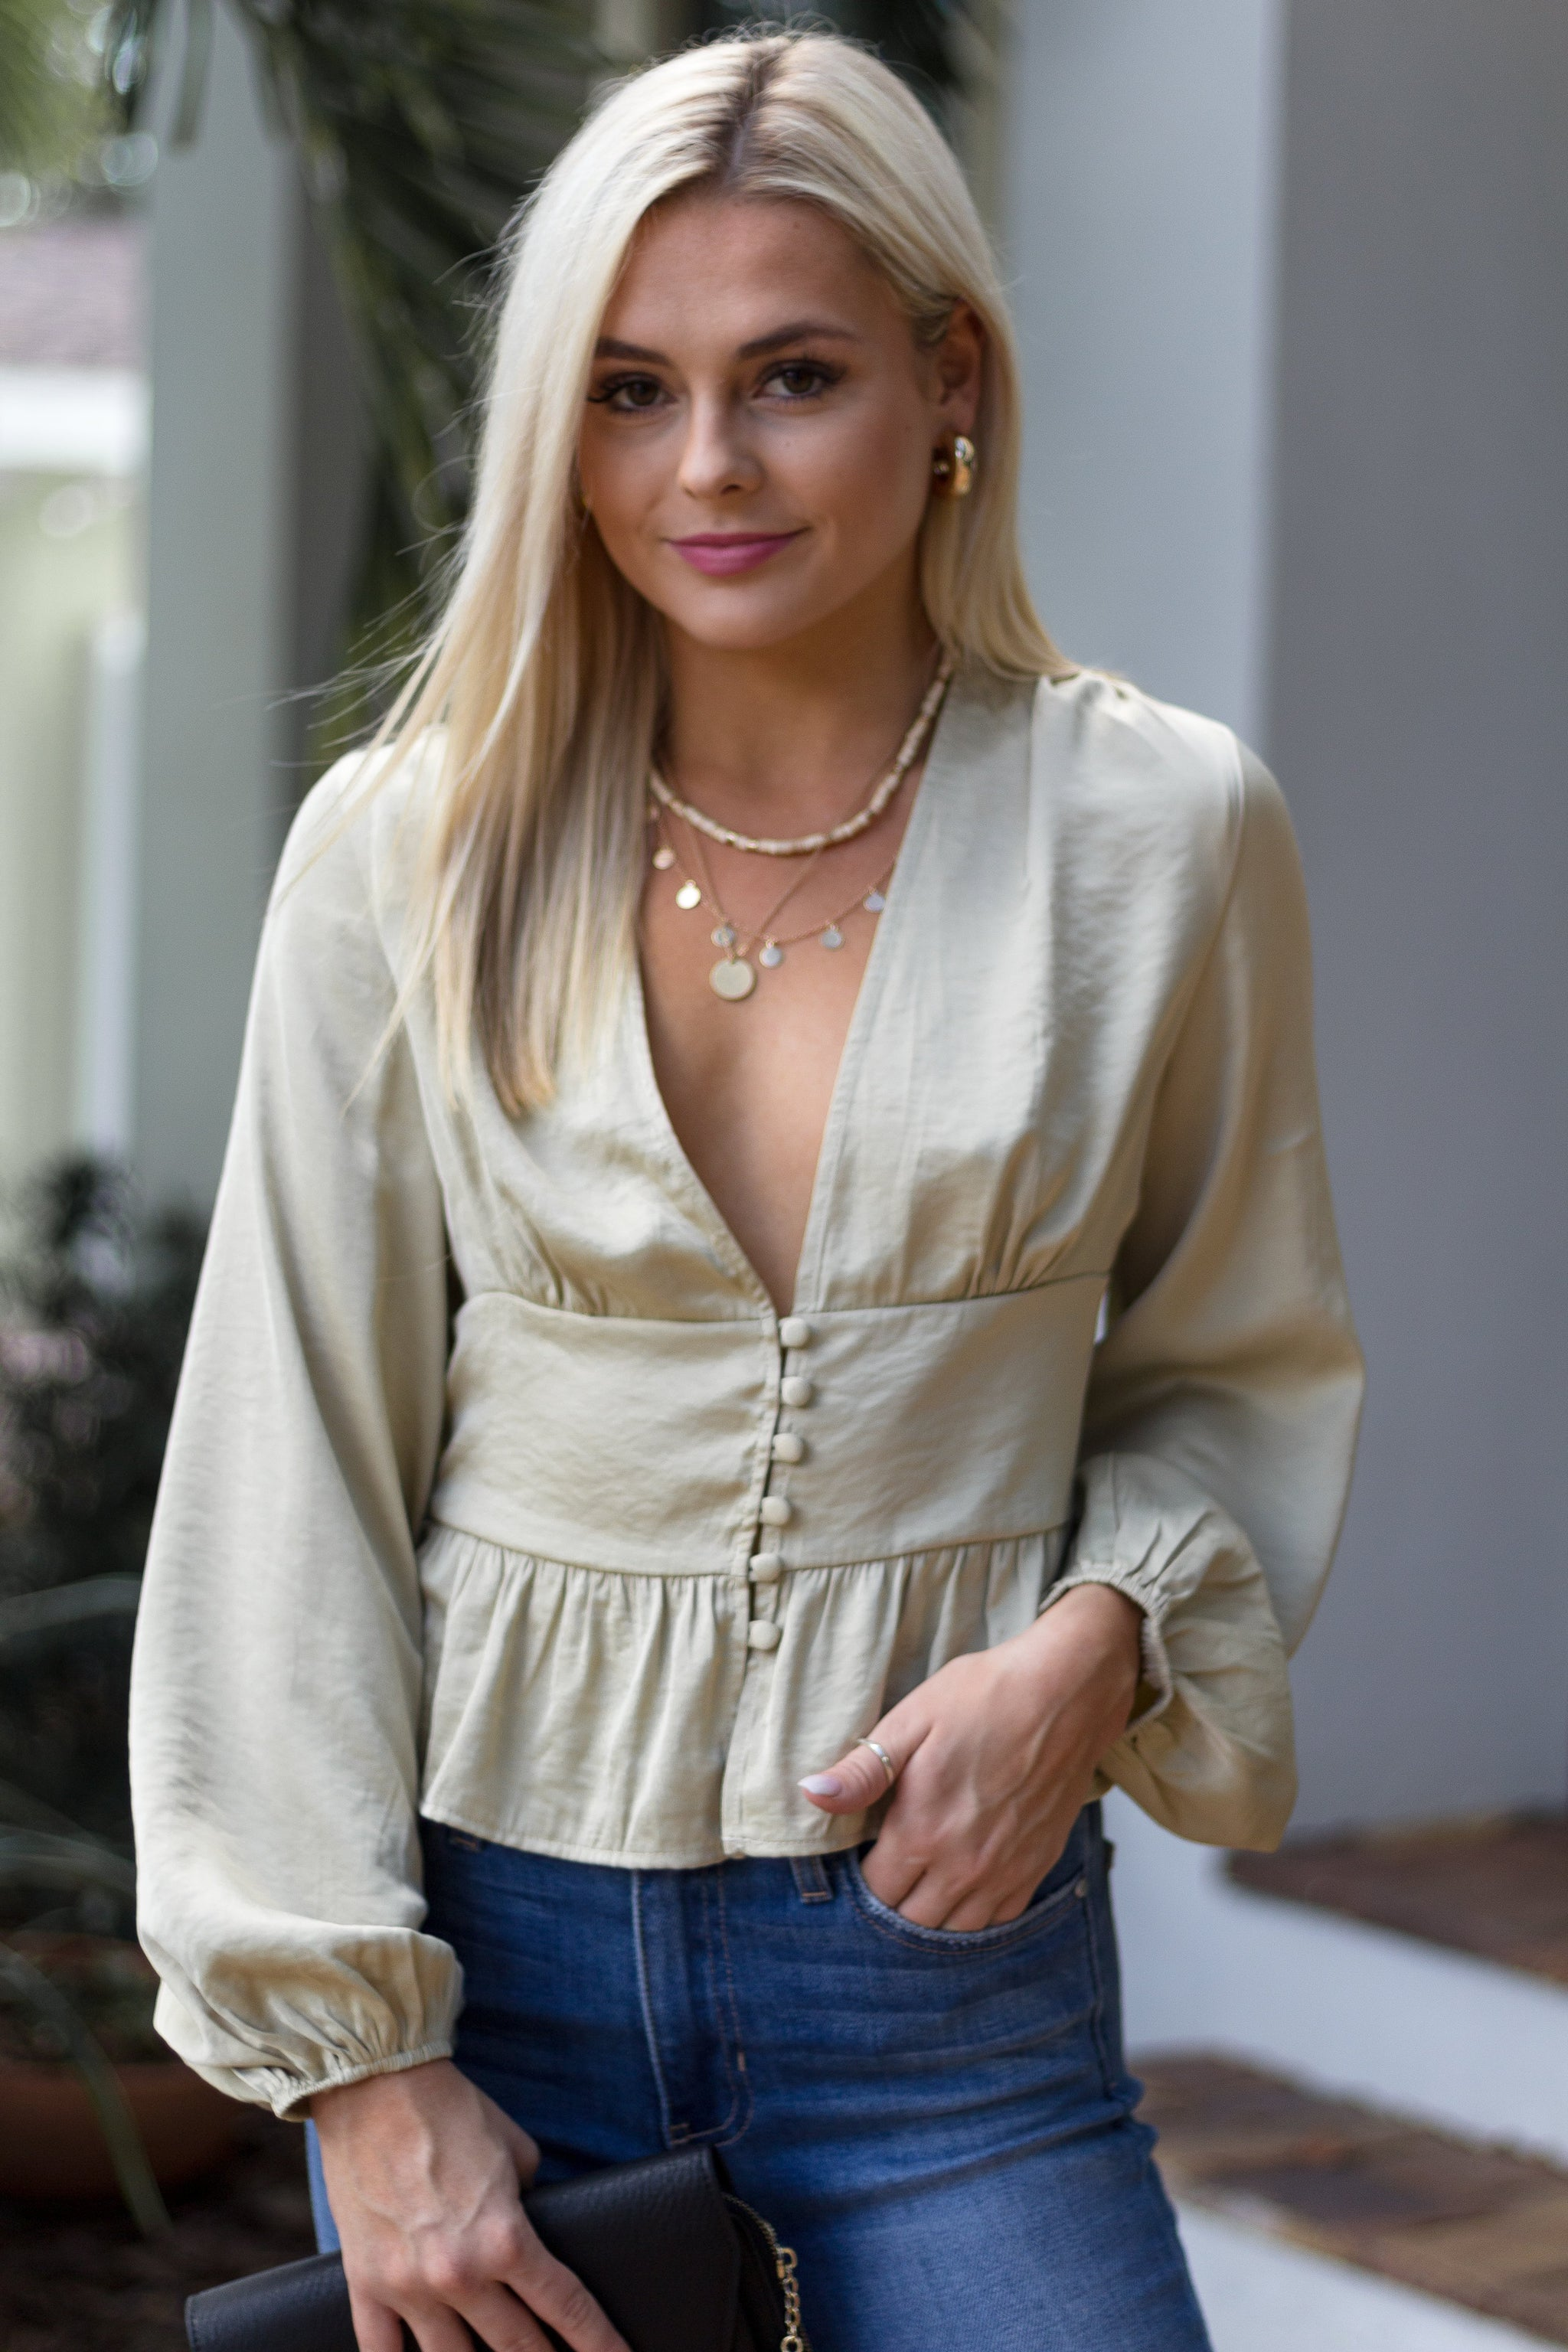 Long puffed elastic cuffed sleeves attach to a deep v-neckline and lead down to a banded waistband with buttons down the bodice and flares into a peplum style hem.